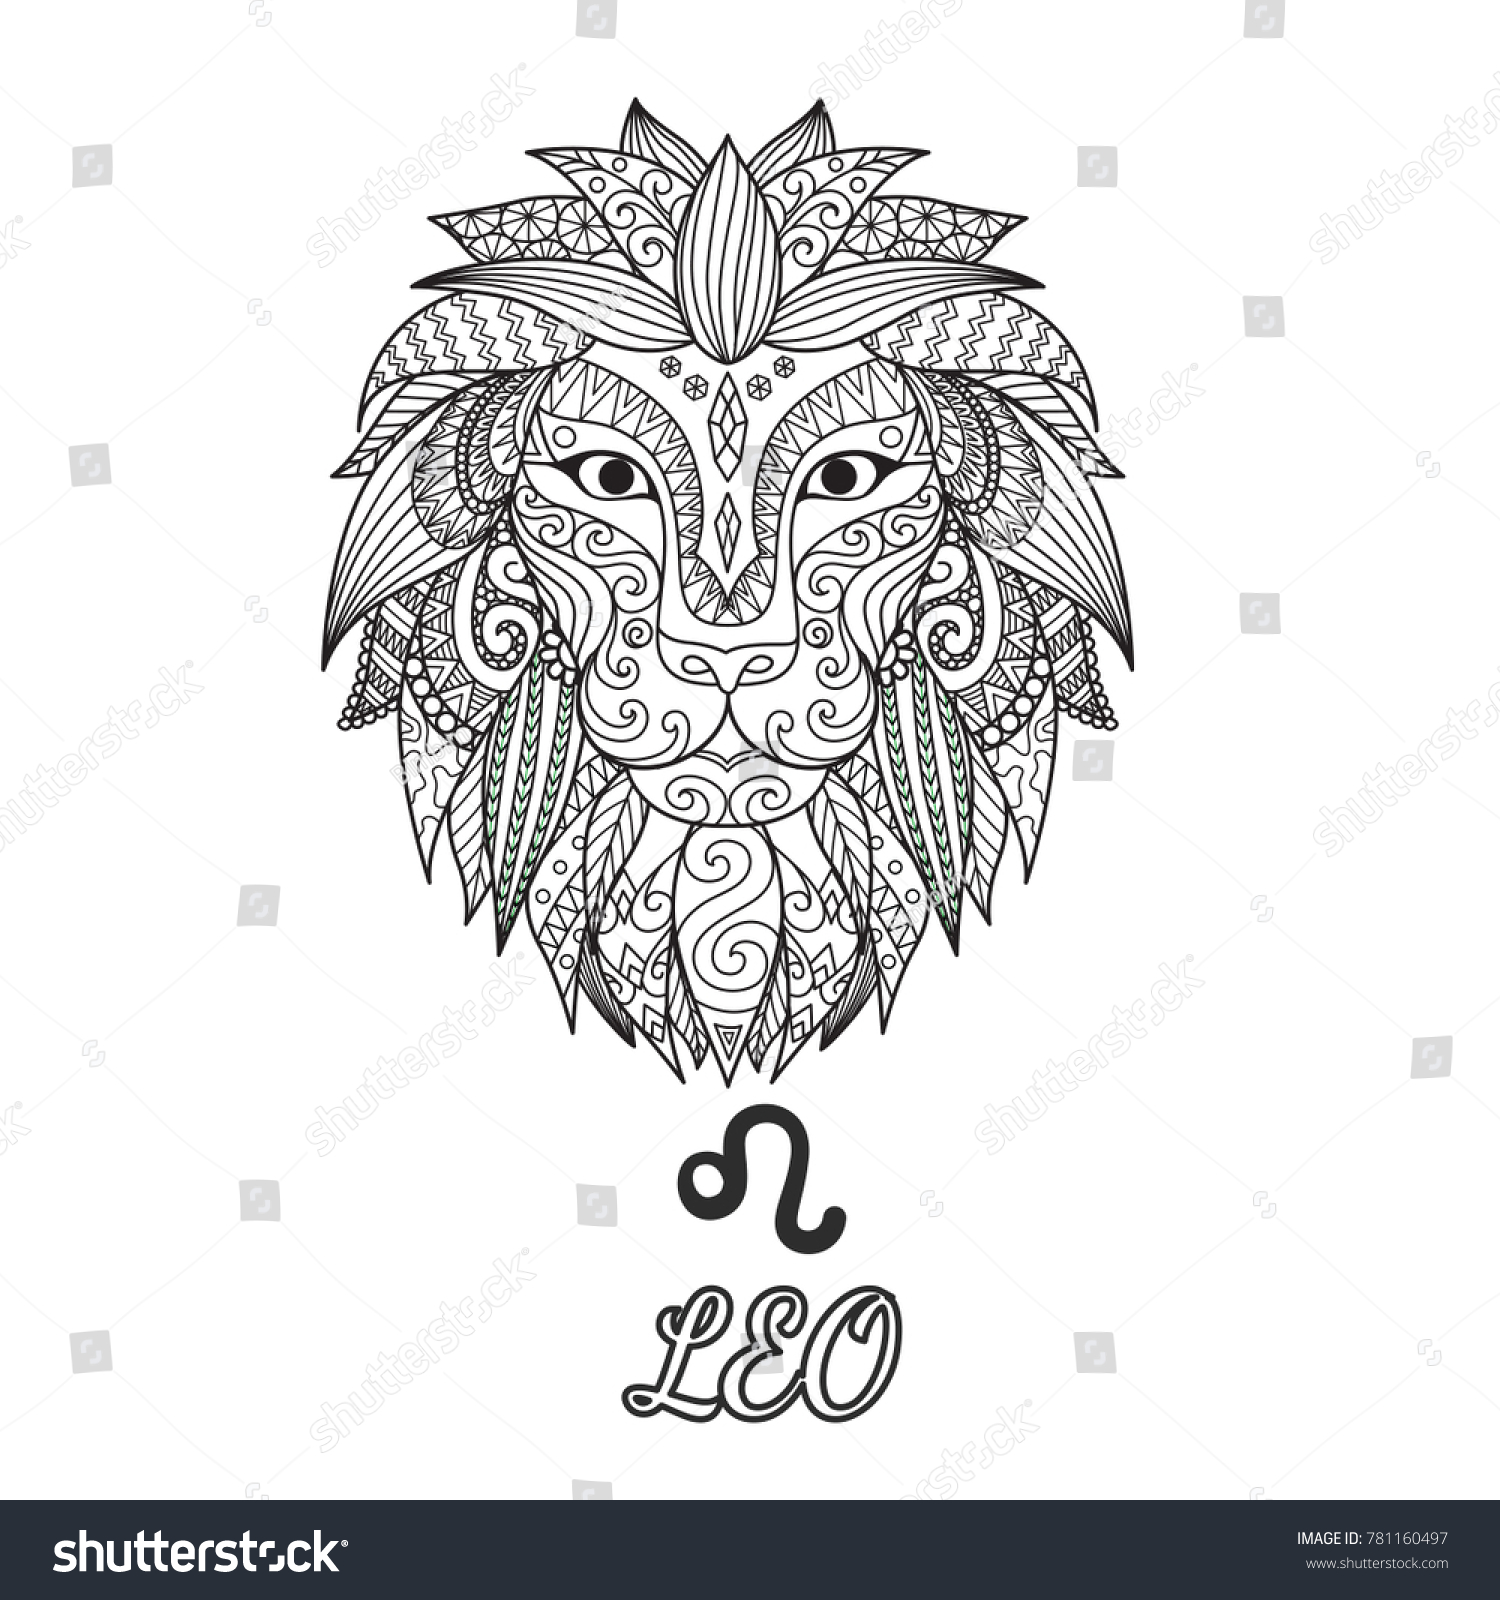 770f028ac Leo Zodiac Coloring Pages